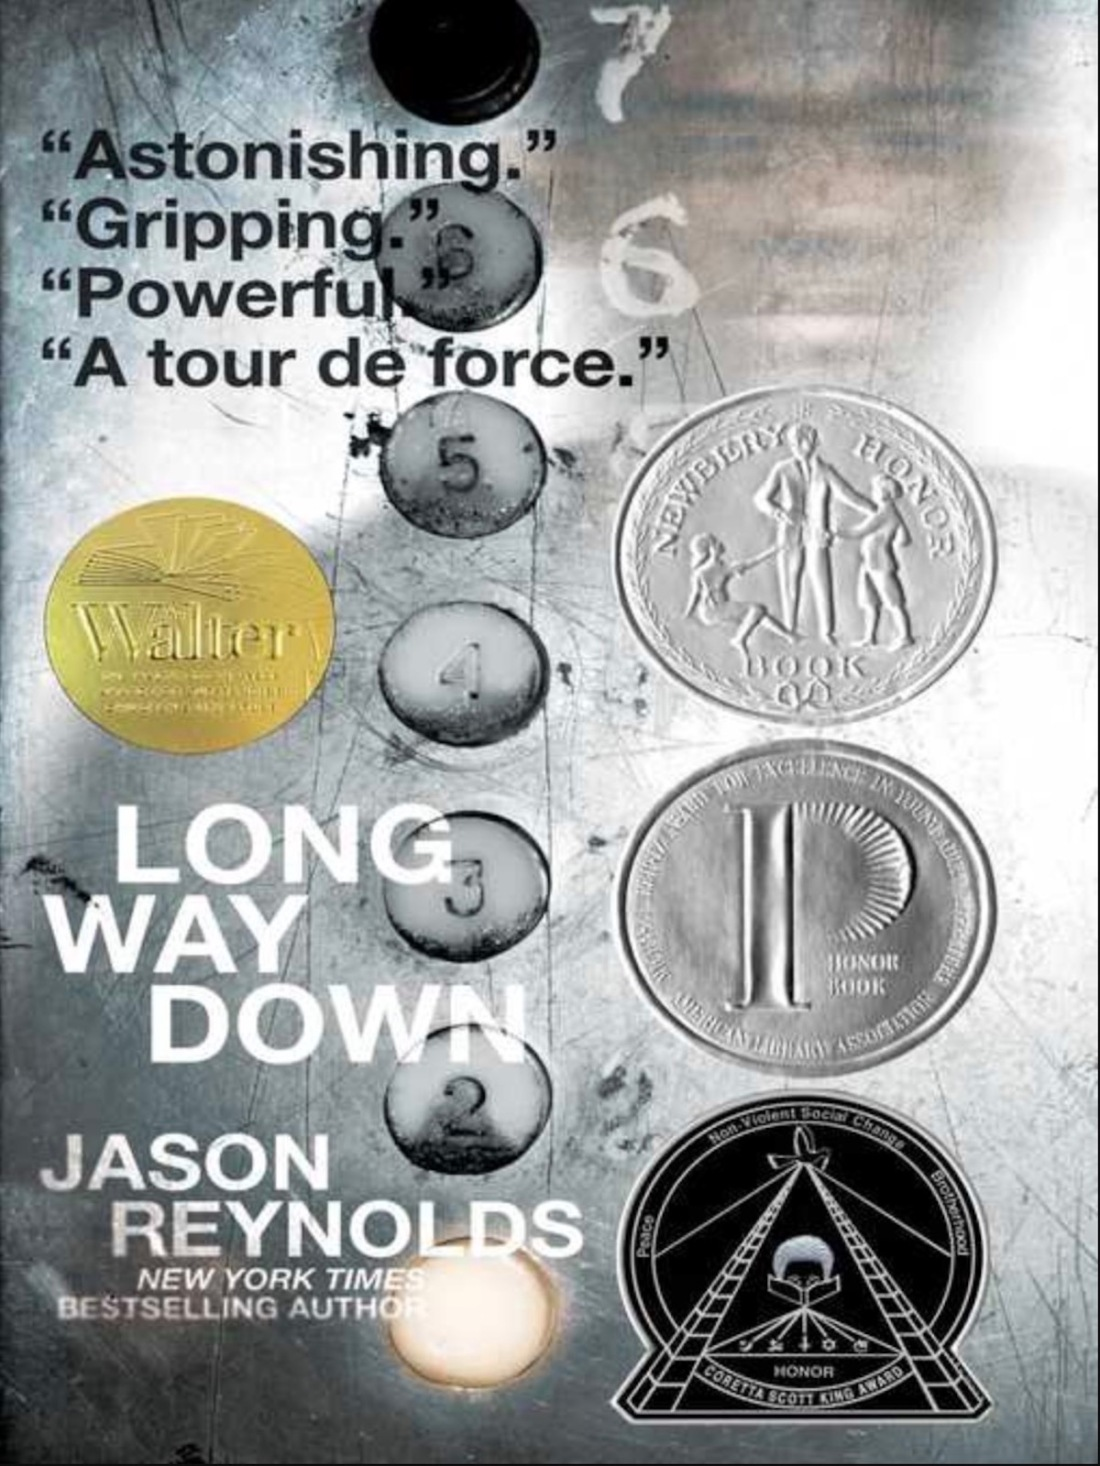 screenshot of cover of long way down by Jason Reynolds